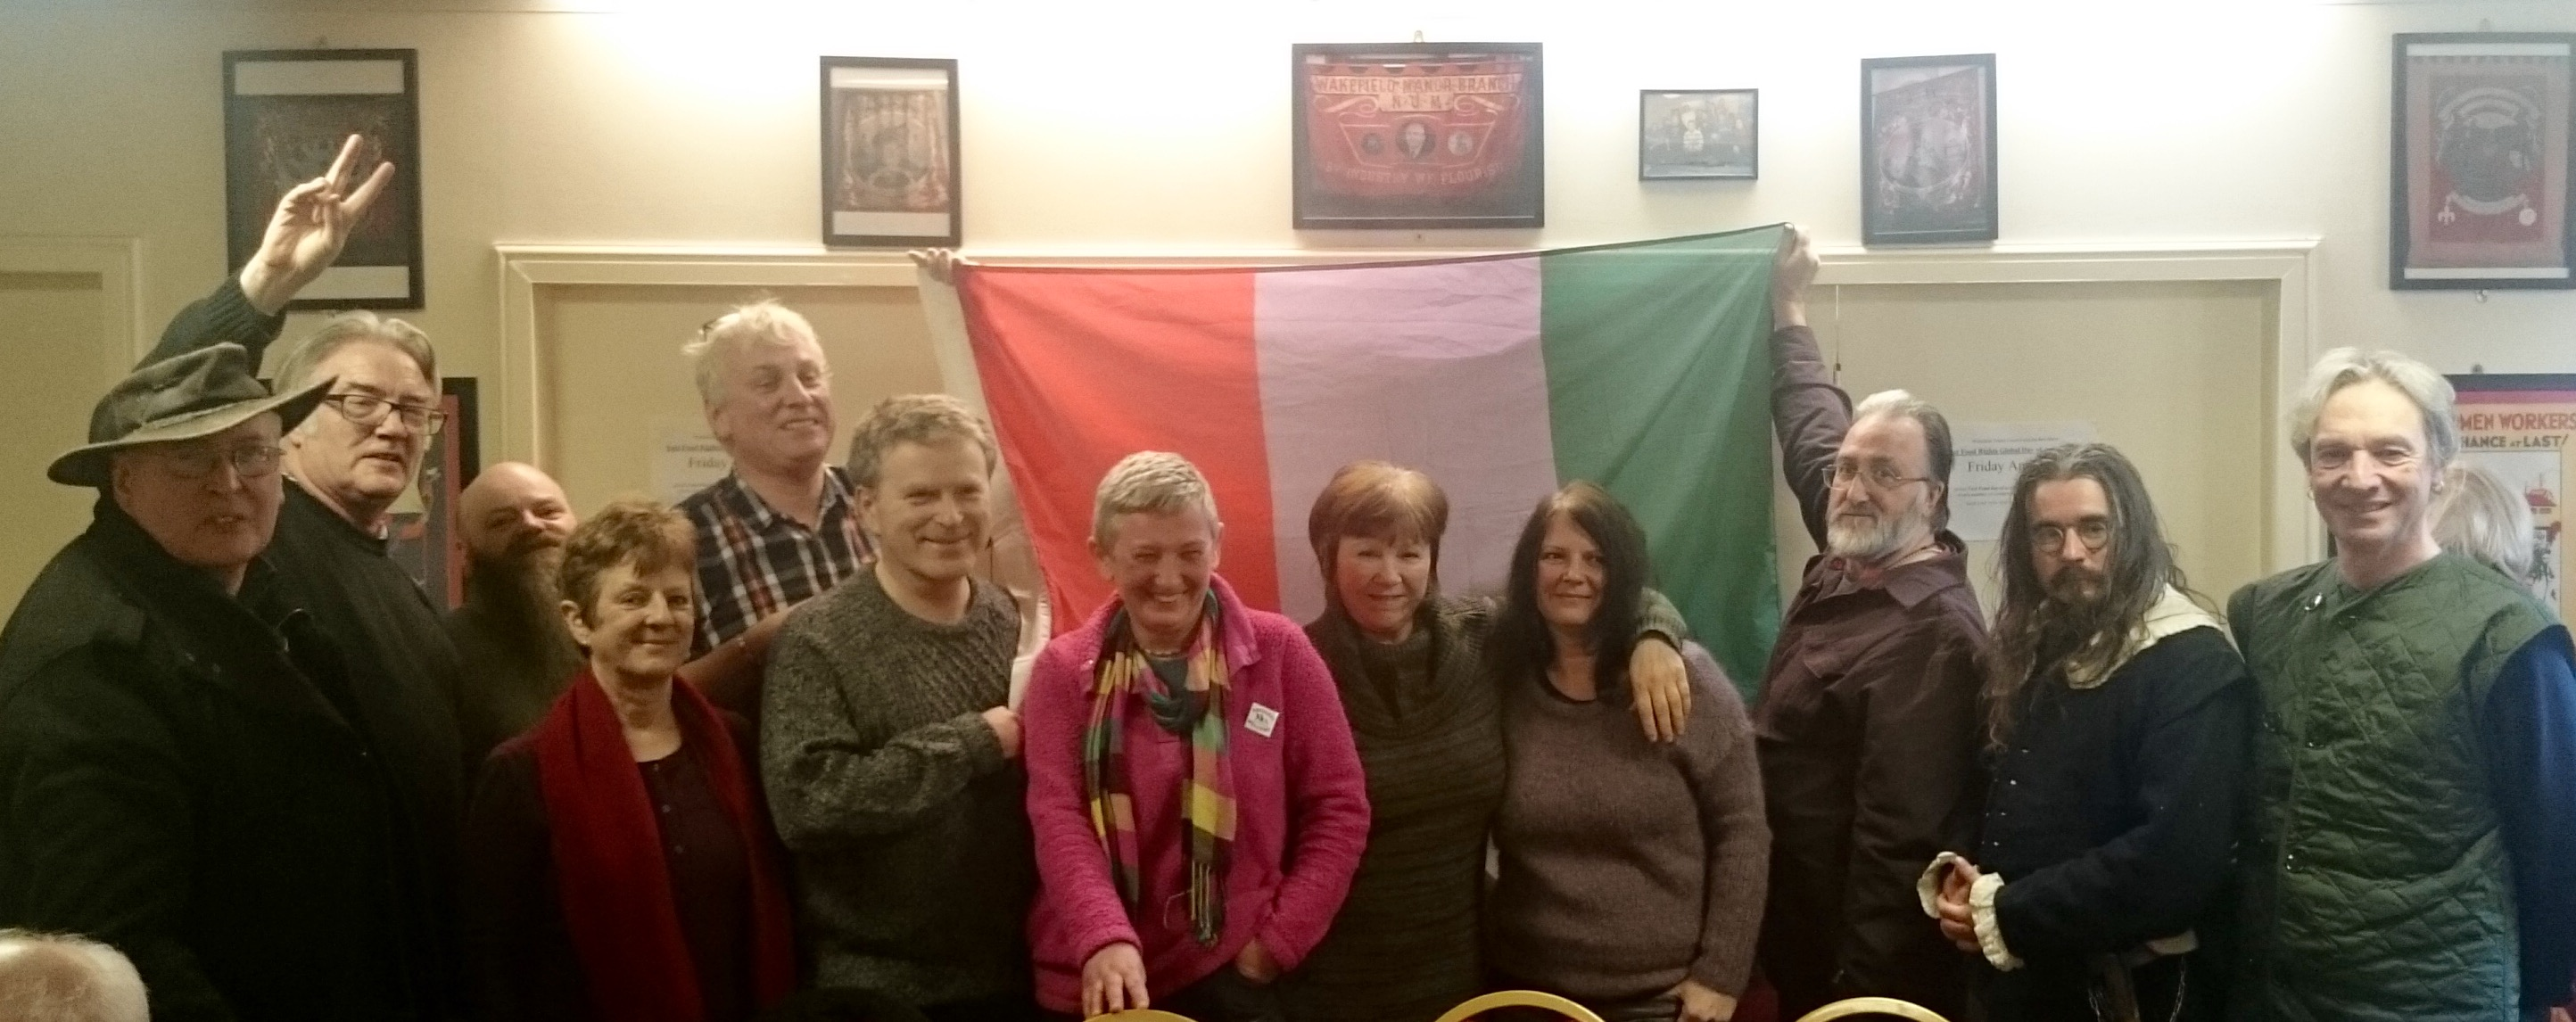 Levellers and Diggers meeting with over 40 people discussing England's democratic revolution, and here are a few rebels with the people's flag